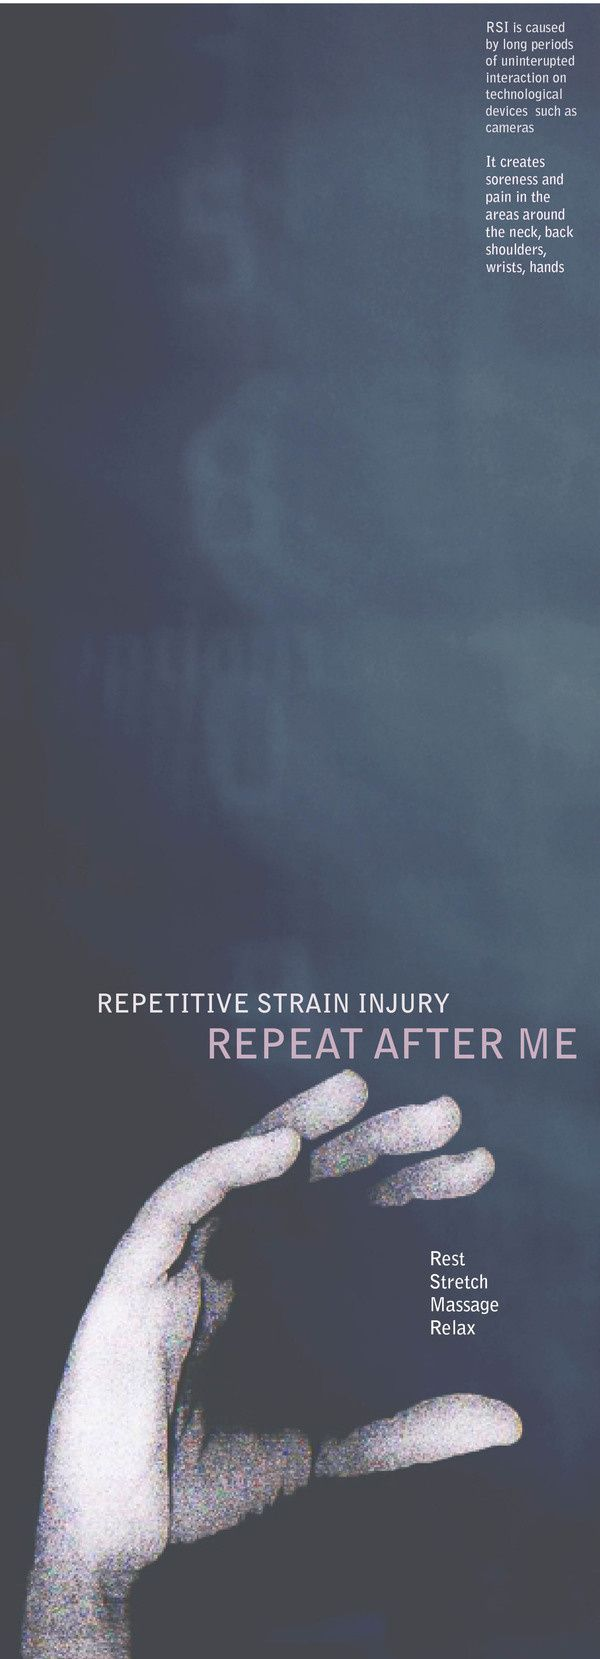 repetitive strain injury essay Guide for young people: how to avoid rsi this is intended as a brief guide for young people, to make them aware that using computers with a keyboard and mouse, playing on games consoles, and texting on mobile phones can cause repetitive strain injuries.